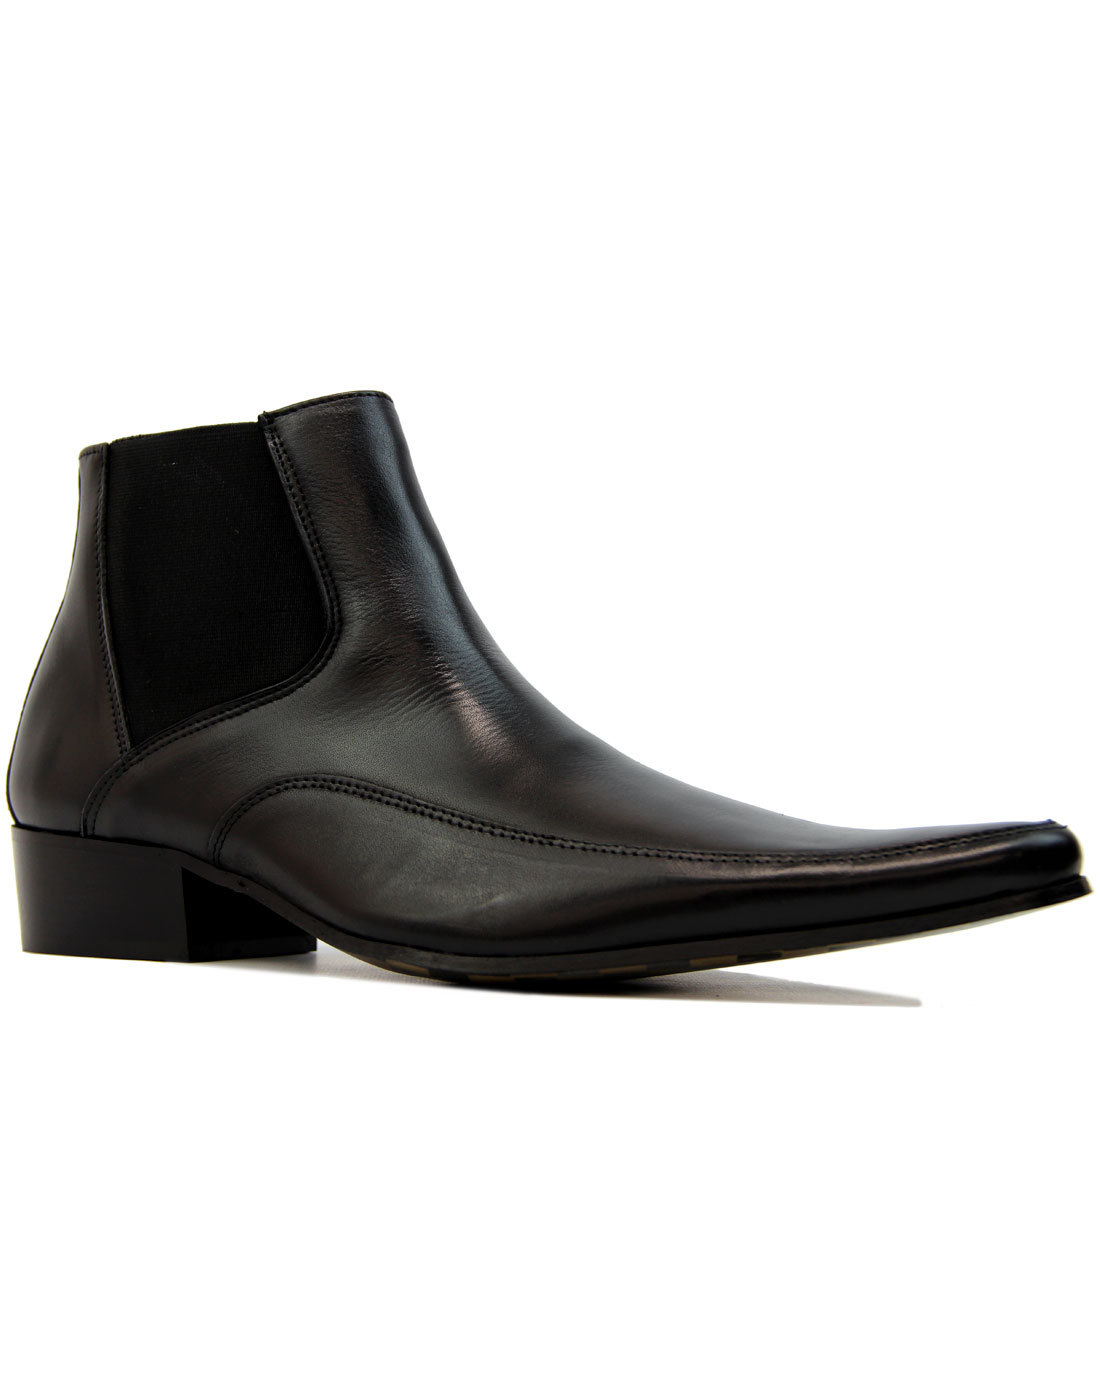 Harrison Mod Leather Cuban Chelsea Beatle Boots